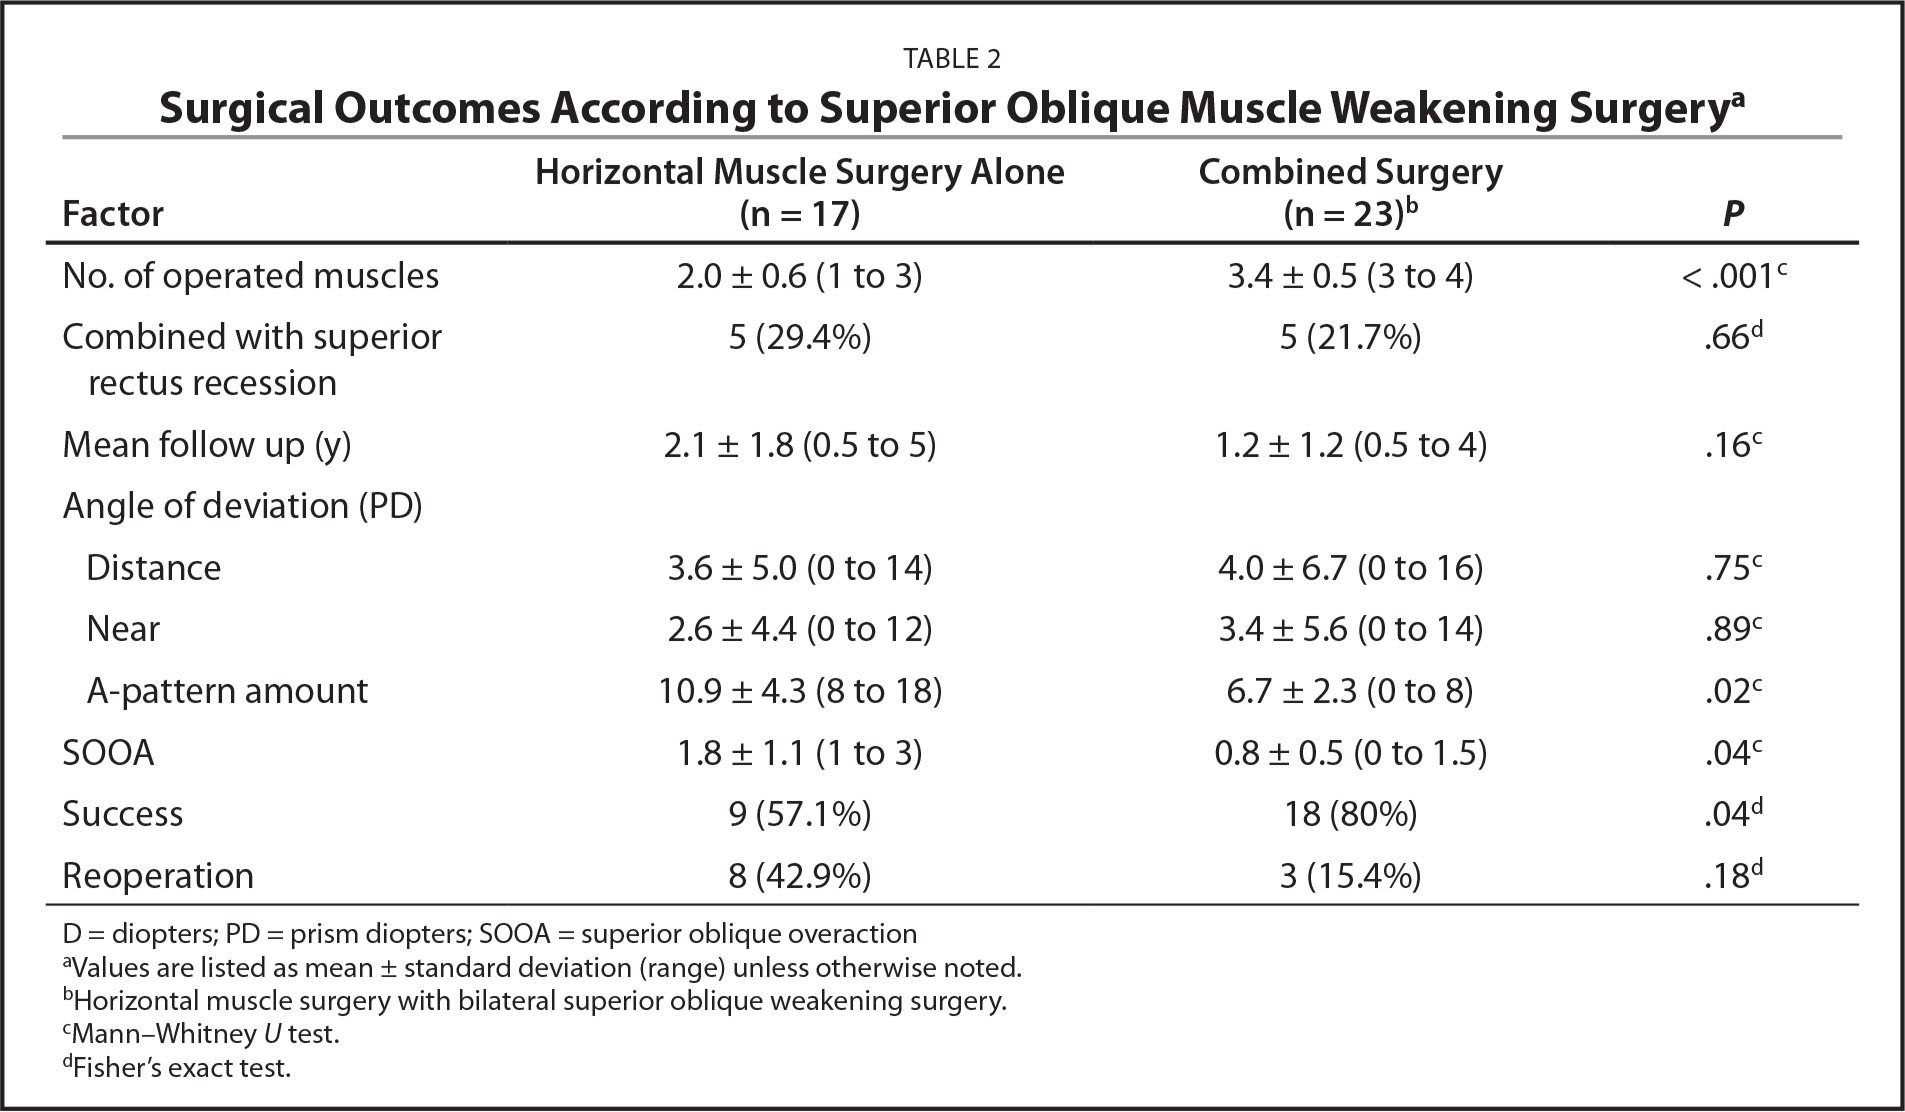 Surgical Outcomes According to Superior Oblique Muscle Weakening Surgerya